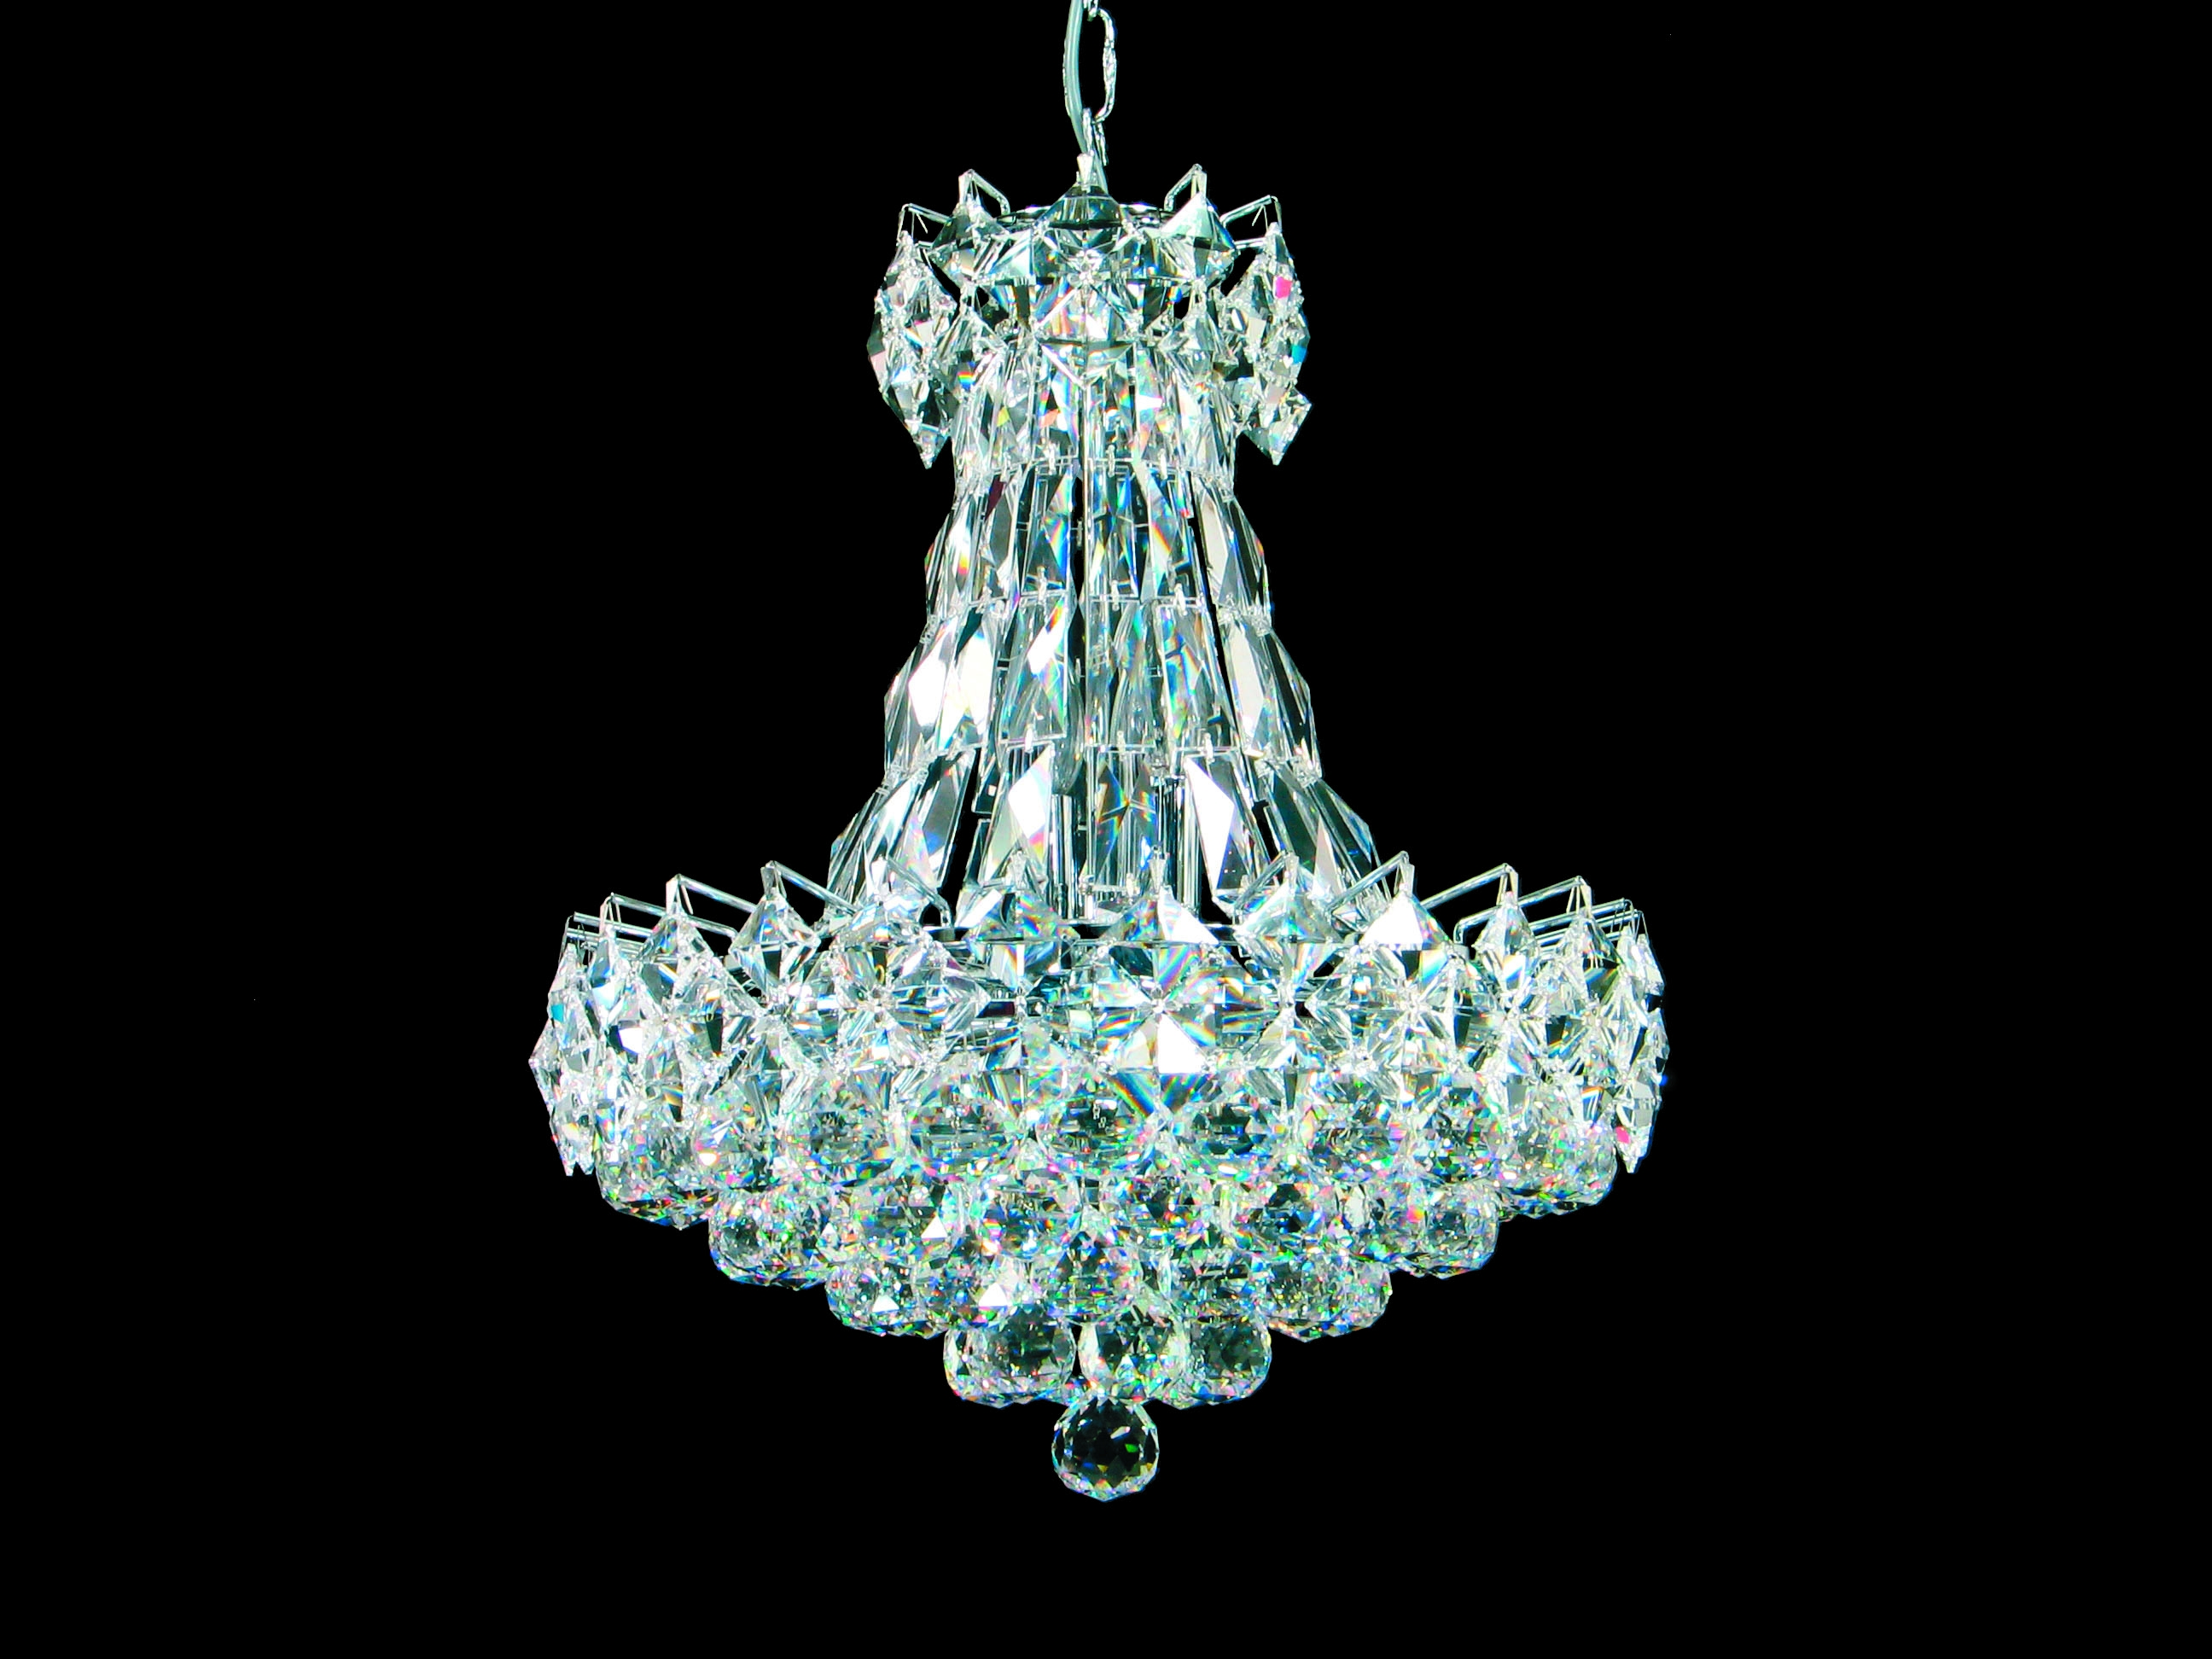 Unique Crystal Chandeliers Home Decor Within Lead Crystal Chandeliers (Image 14 of 15)